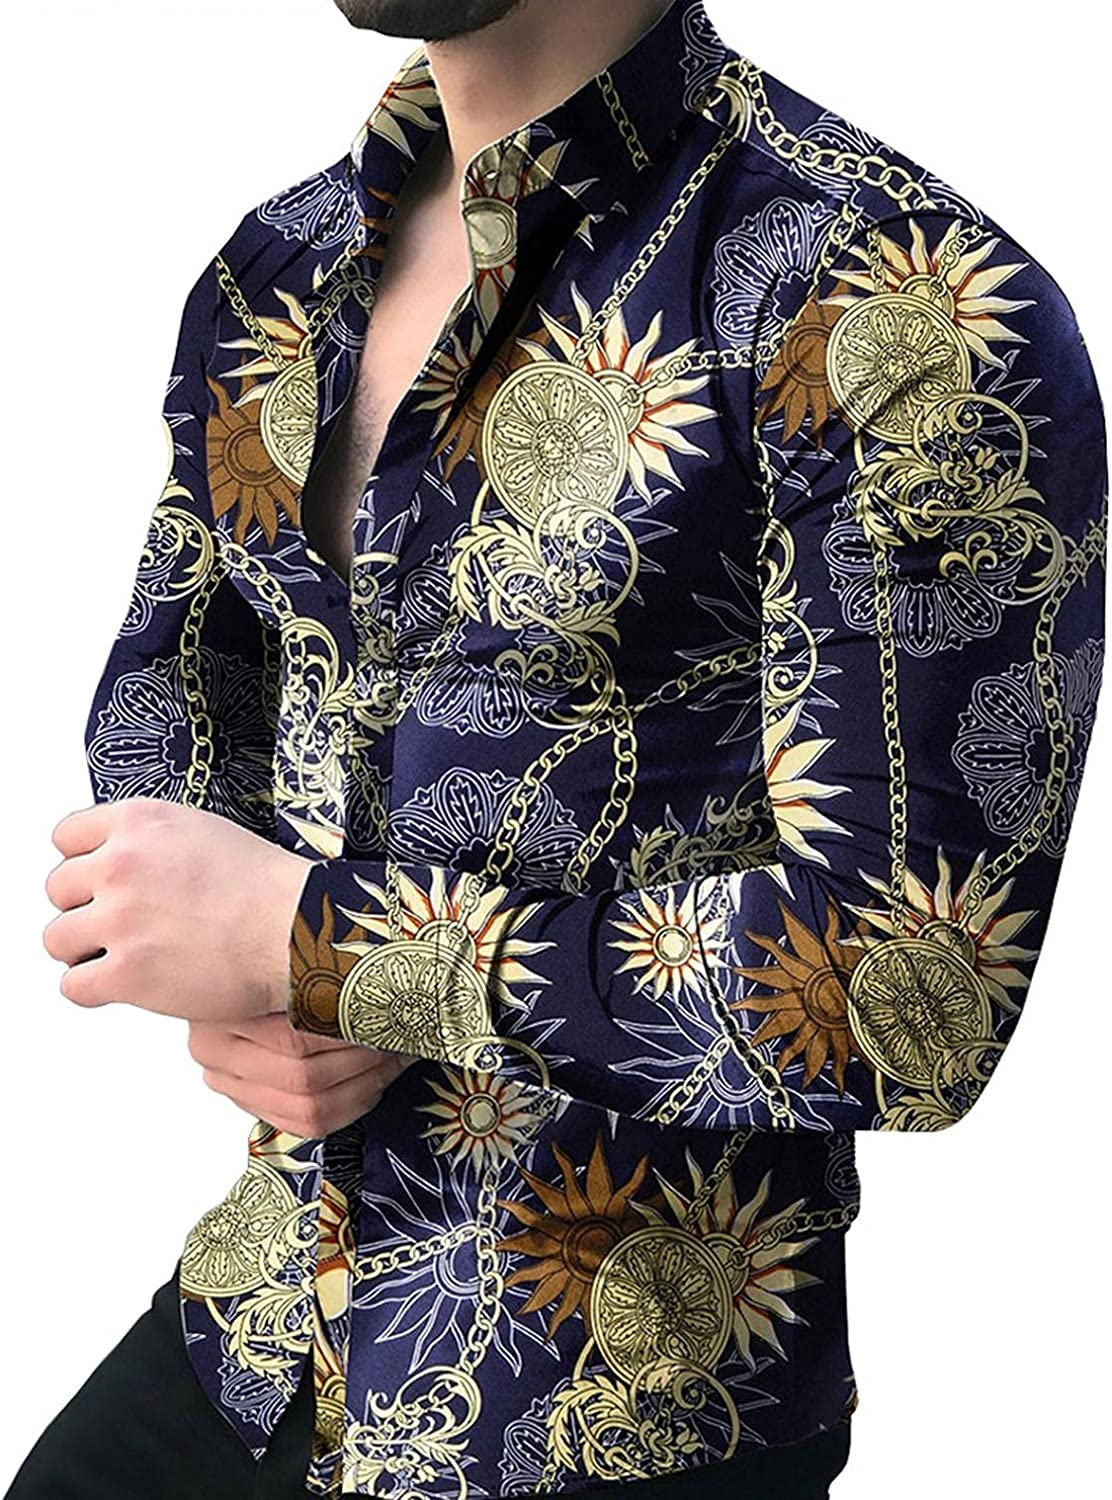 Huangse Men's Hipster Printed Slim Fit Long Sleeve Shirt Casual Button Down Hawaii Flower Vacation Shirt